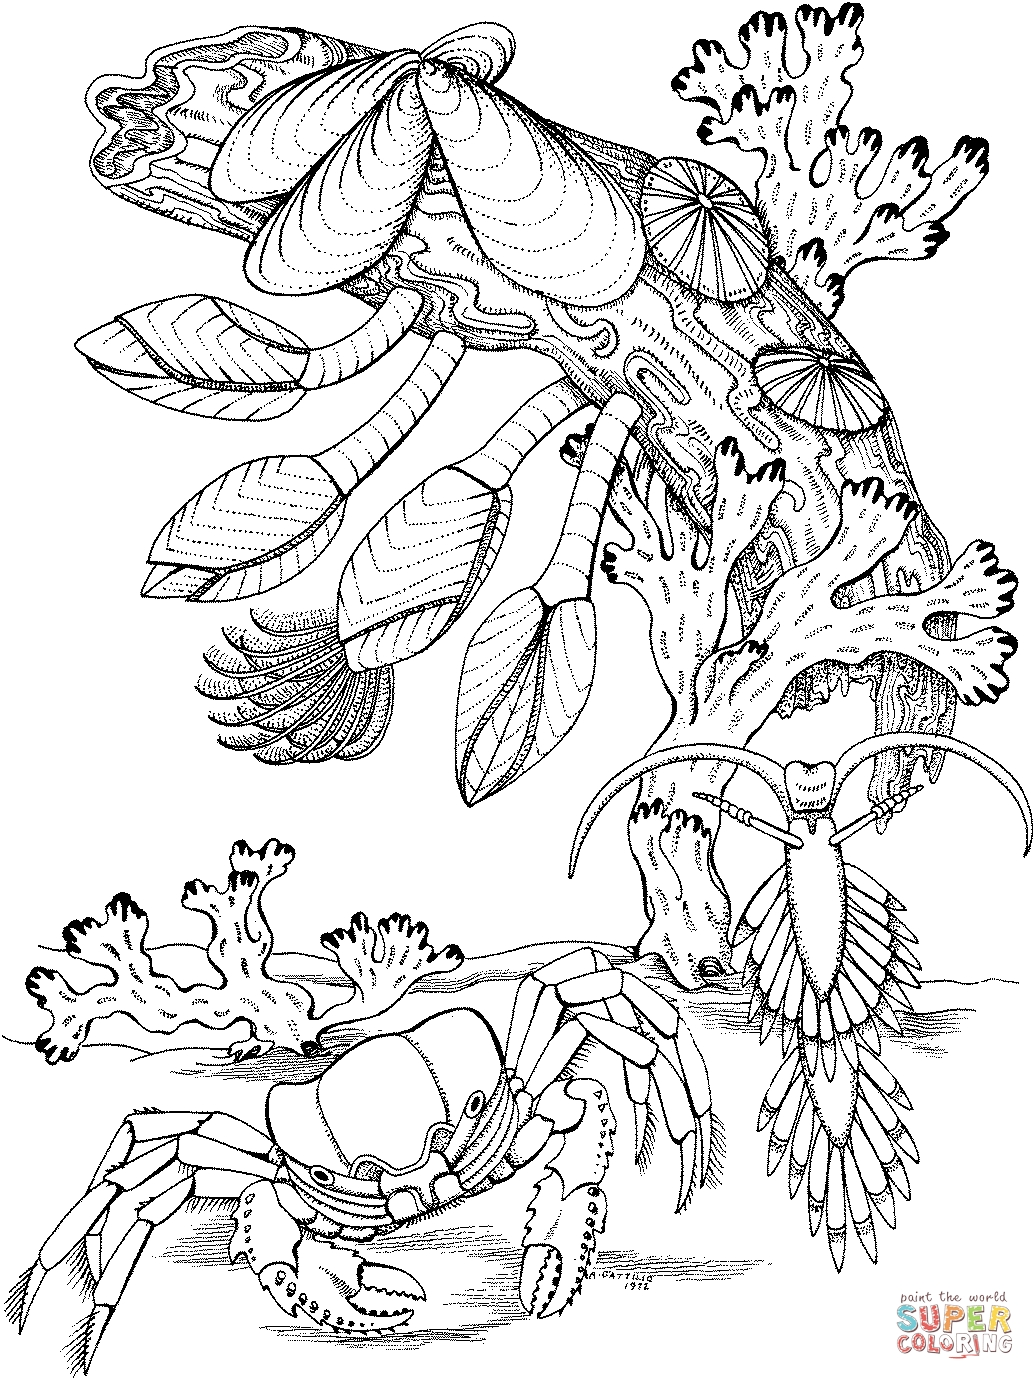 1035x1380 Best Of Simple Coral Reef Coloring Pages Gallery Free Coloring Pages